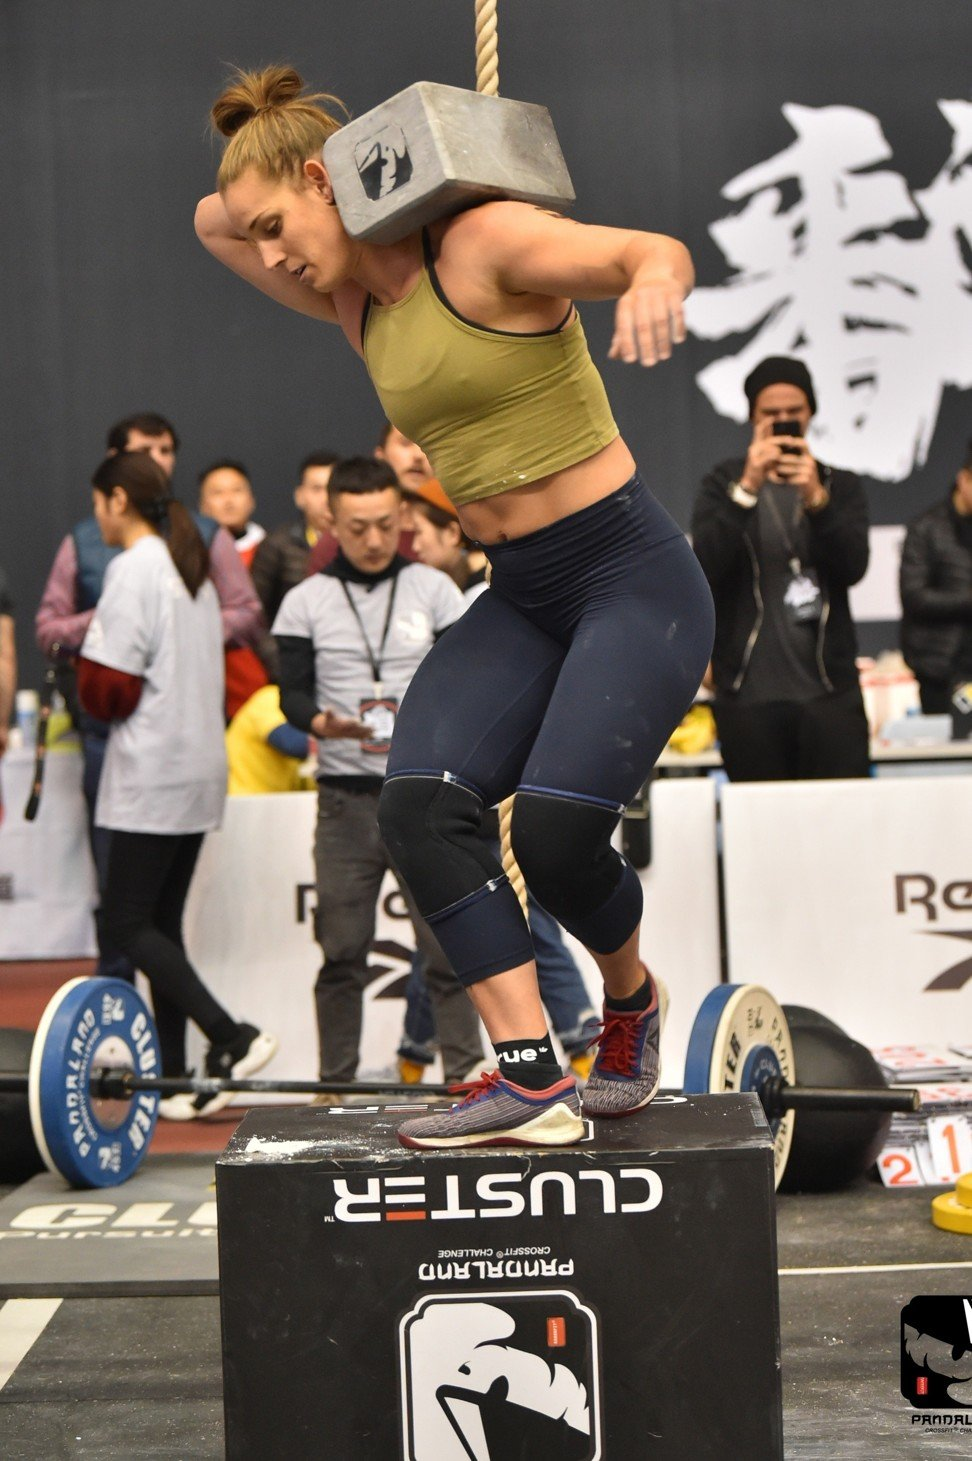 Roberts leads the women after the first day of the Pandaland CrossFit Challenge. Photo: Pandaland CrossFit Challenge